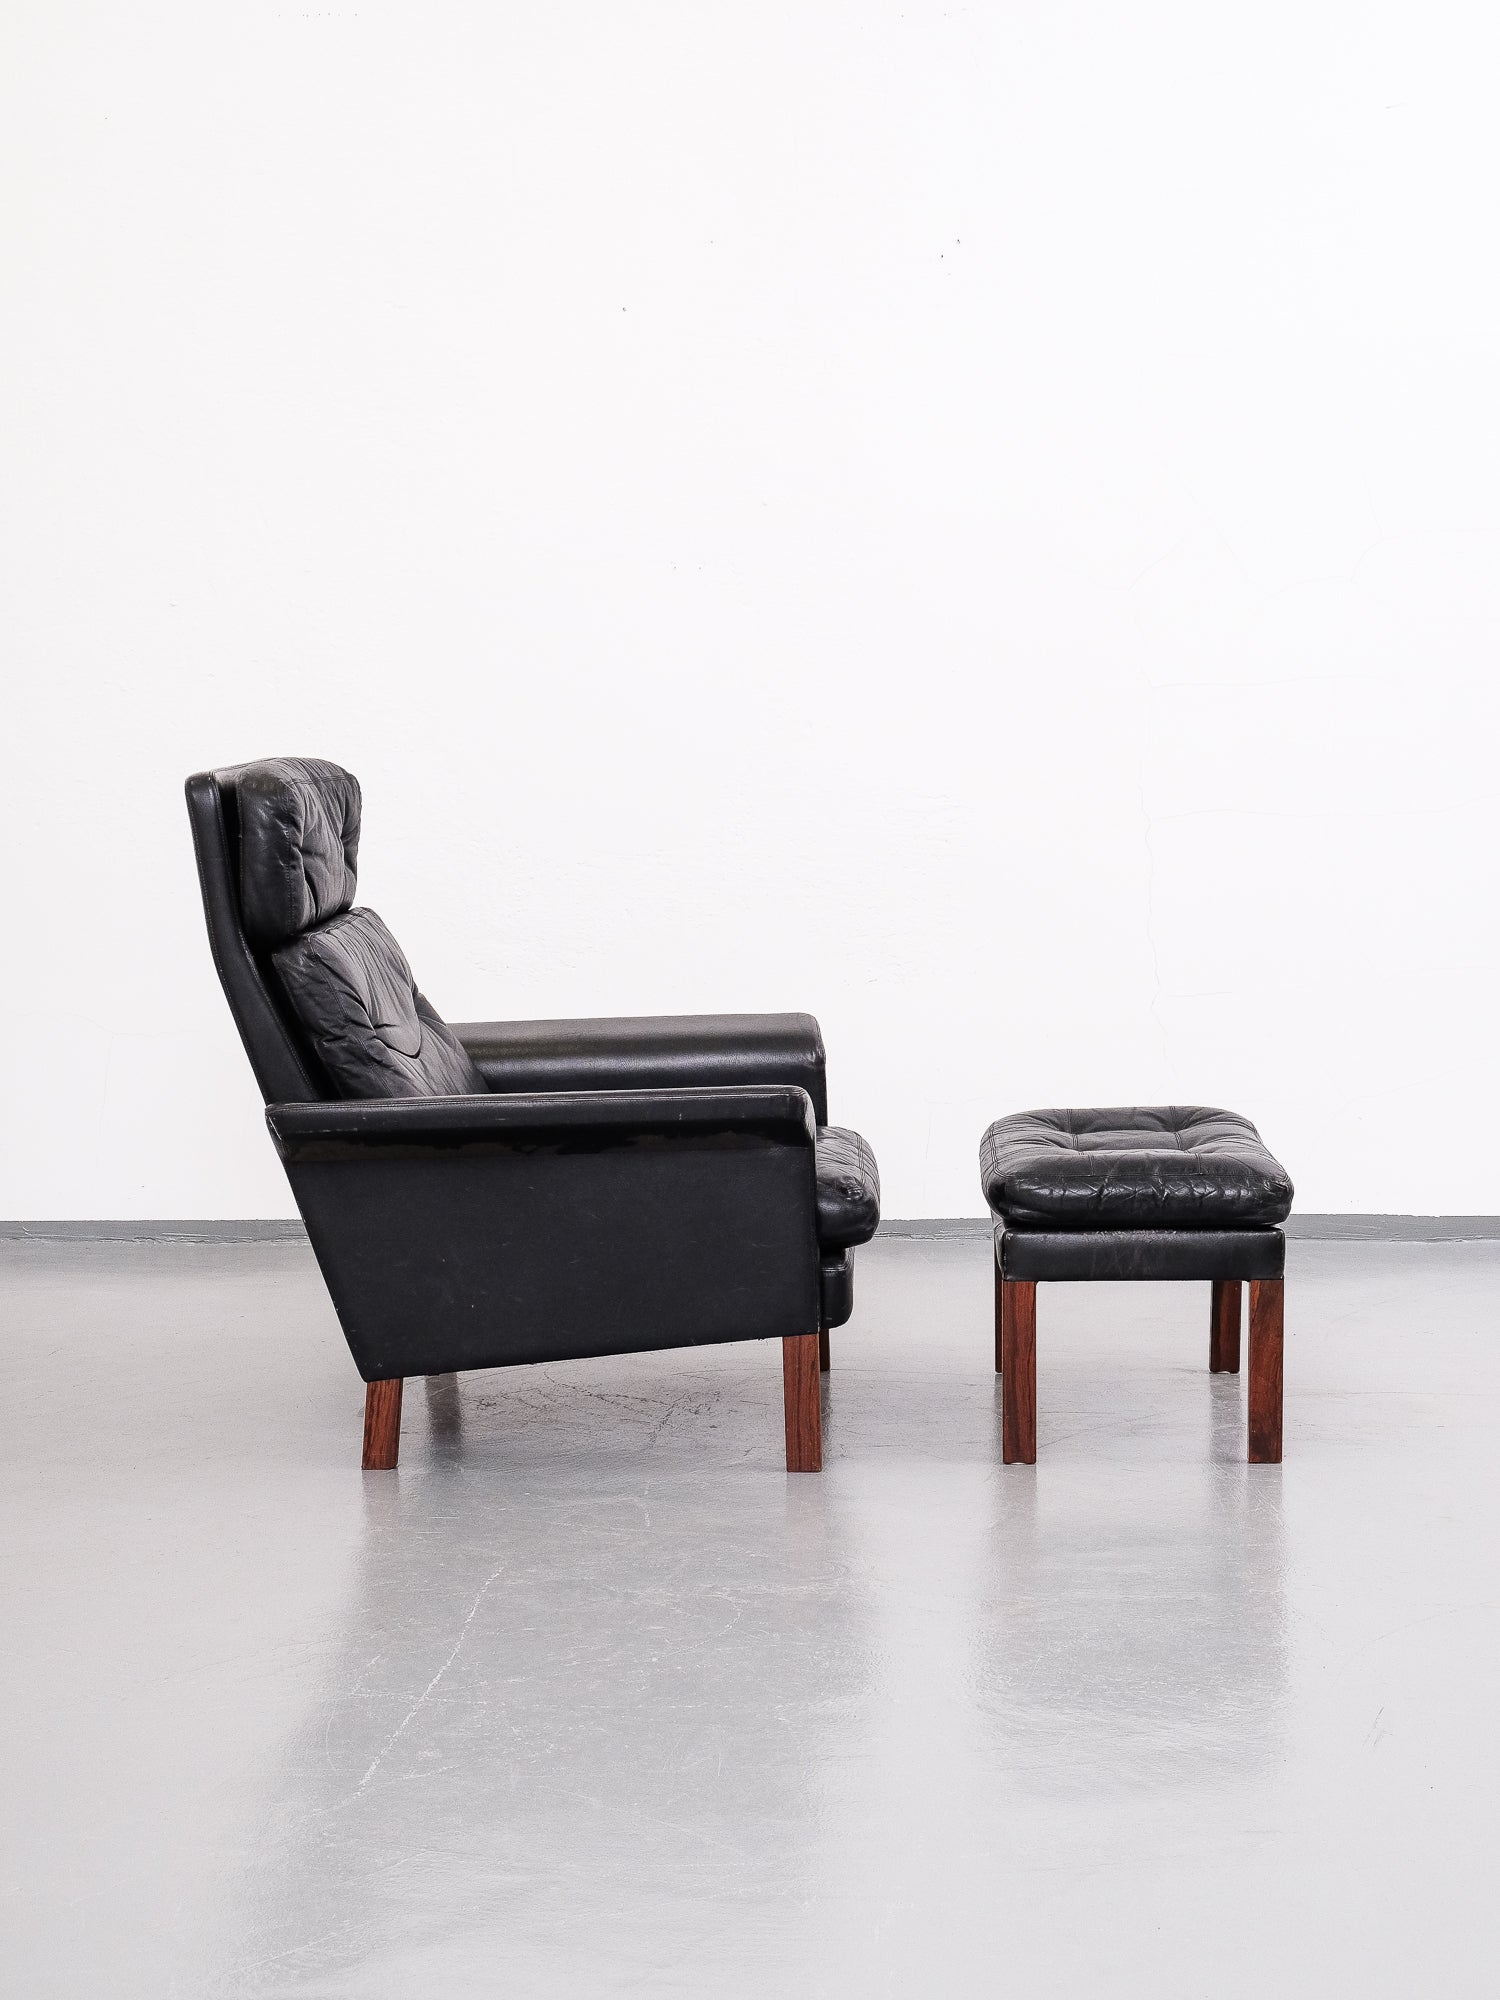 Midcentury Black Leather Highback Lounge Chair and Ottoman, 1960s